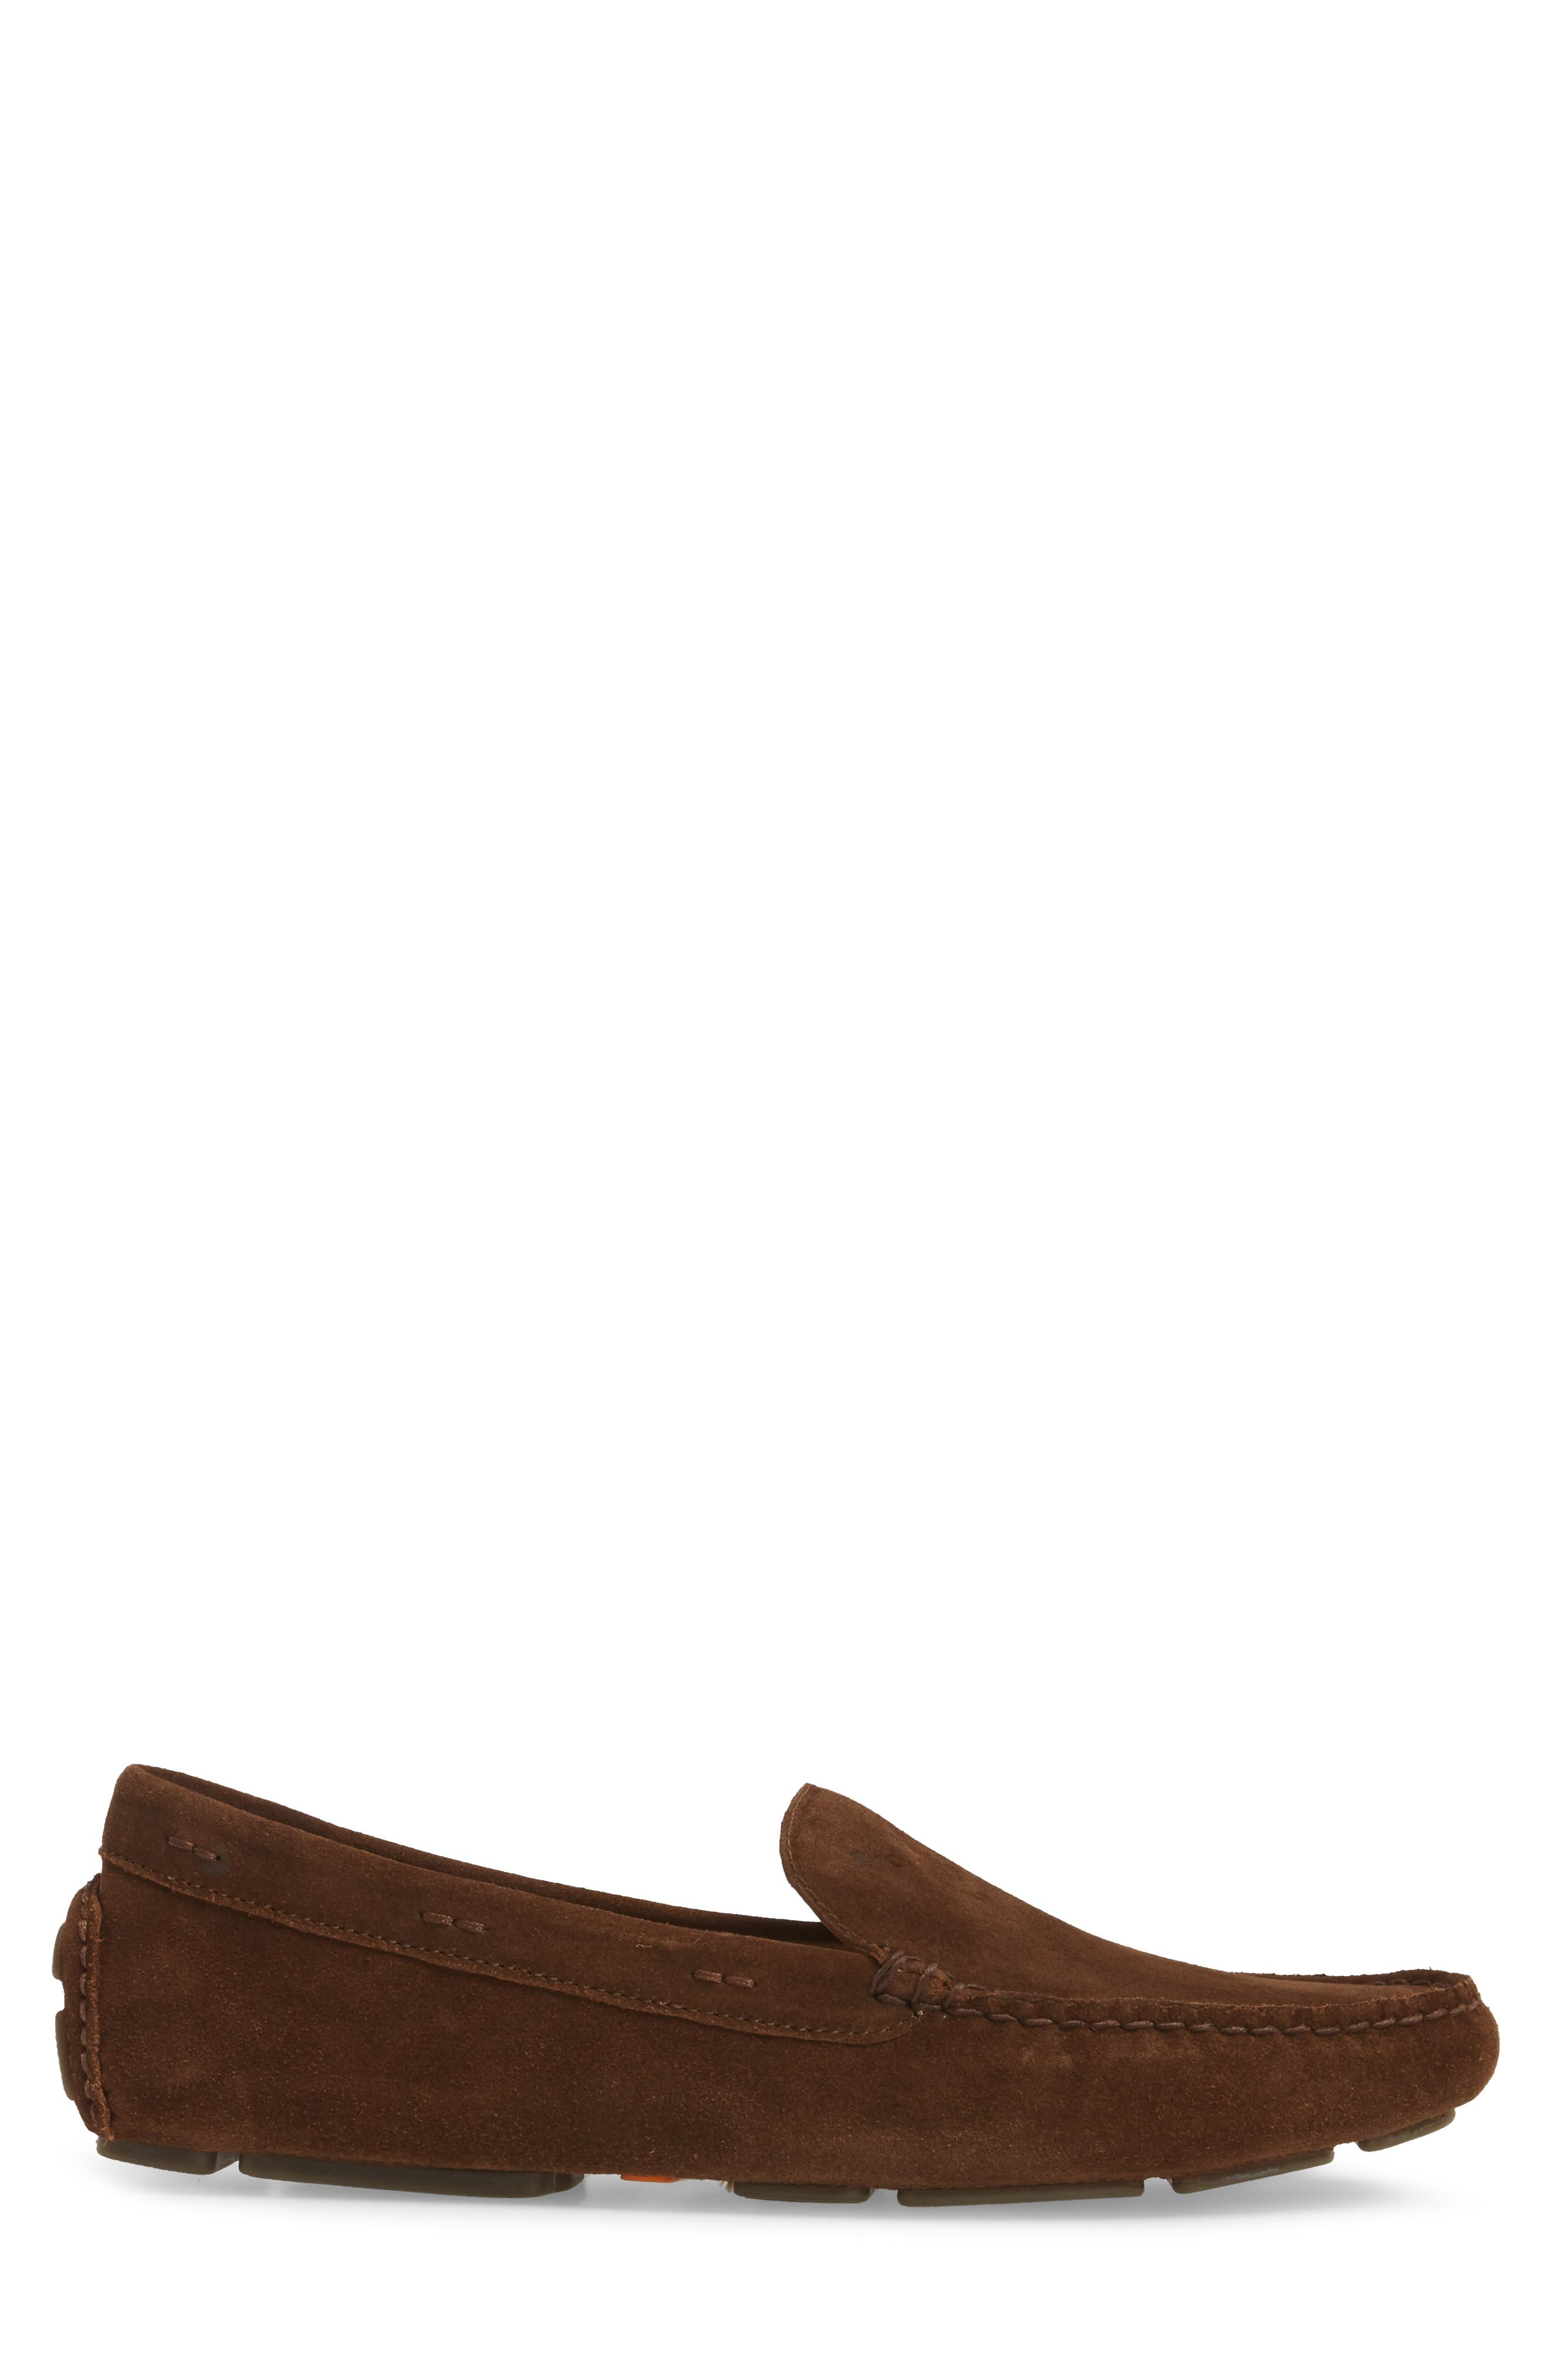 Pagota Driving Loafer,                             Alternate thumbnail 14, color,